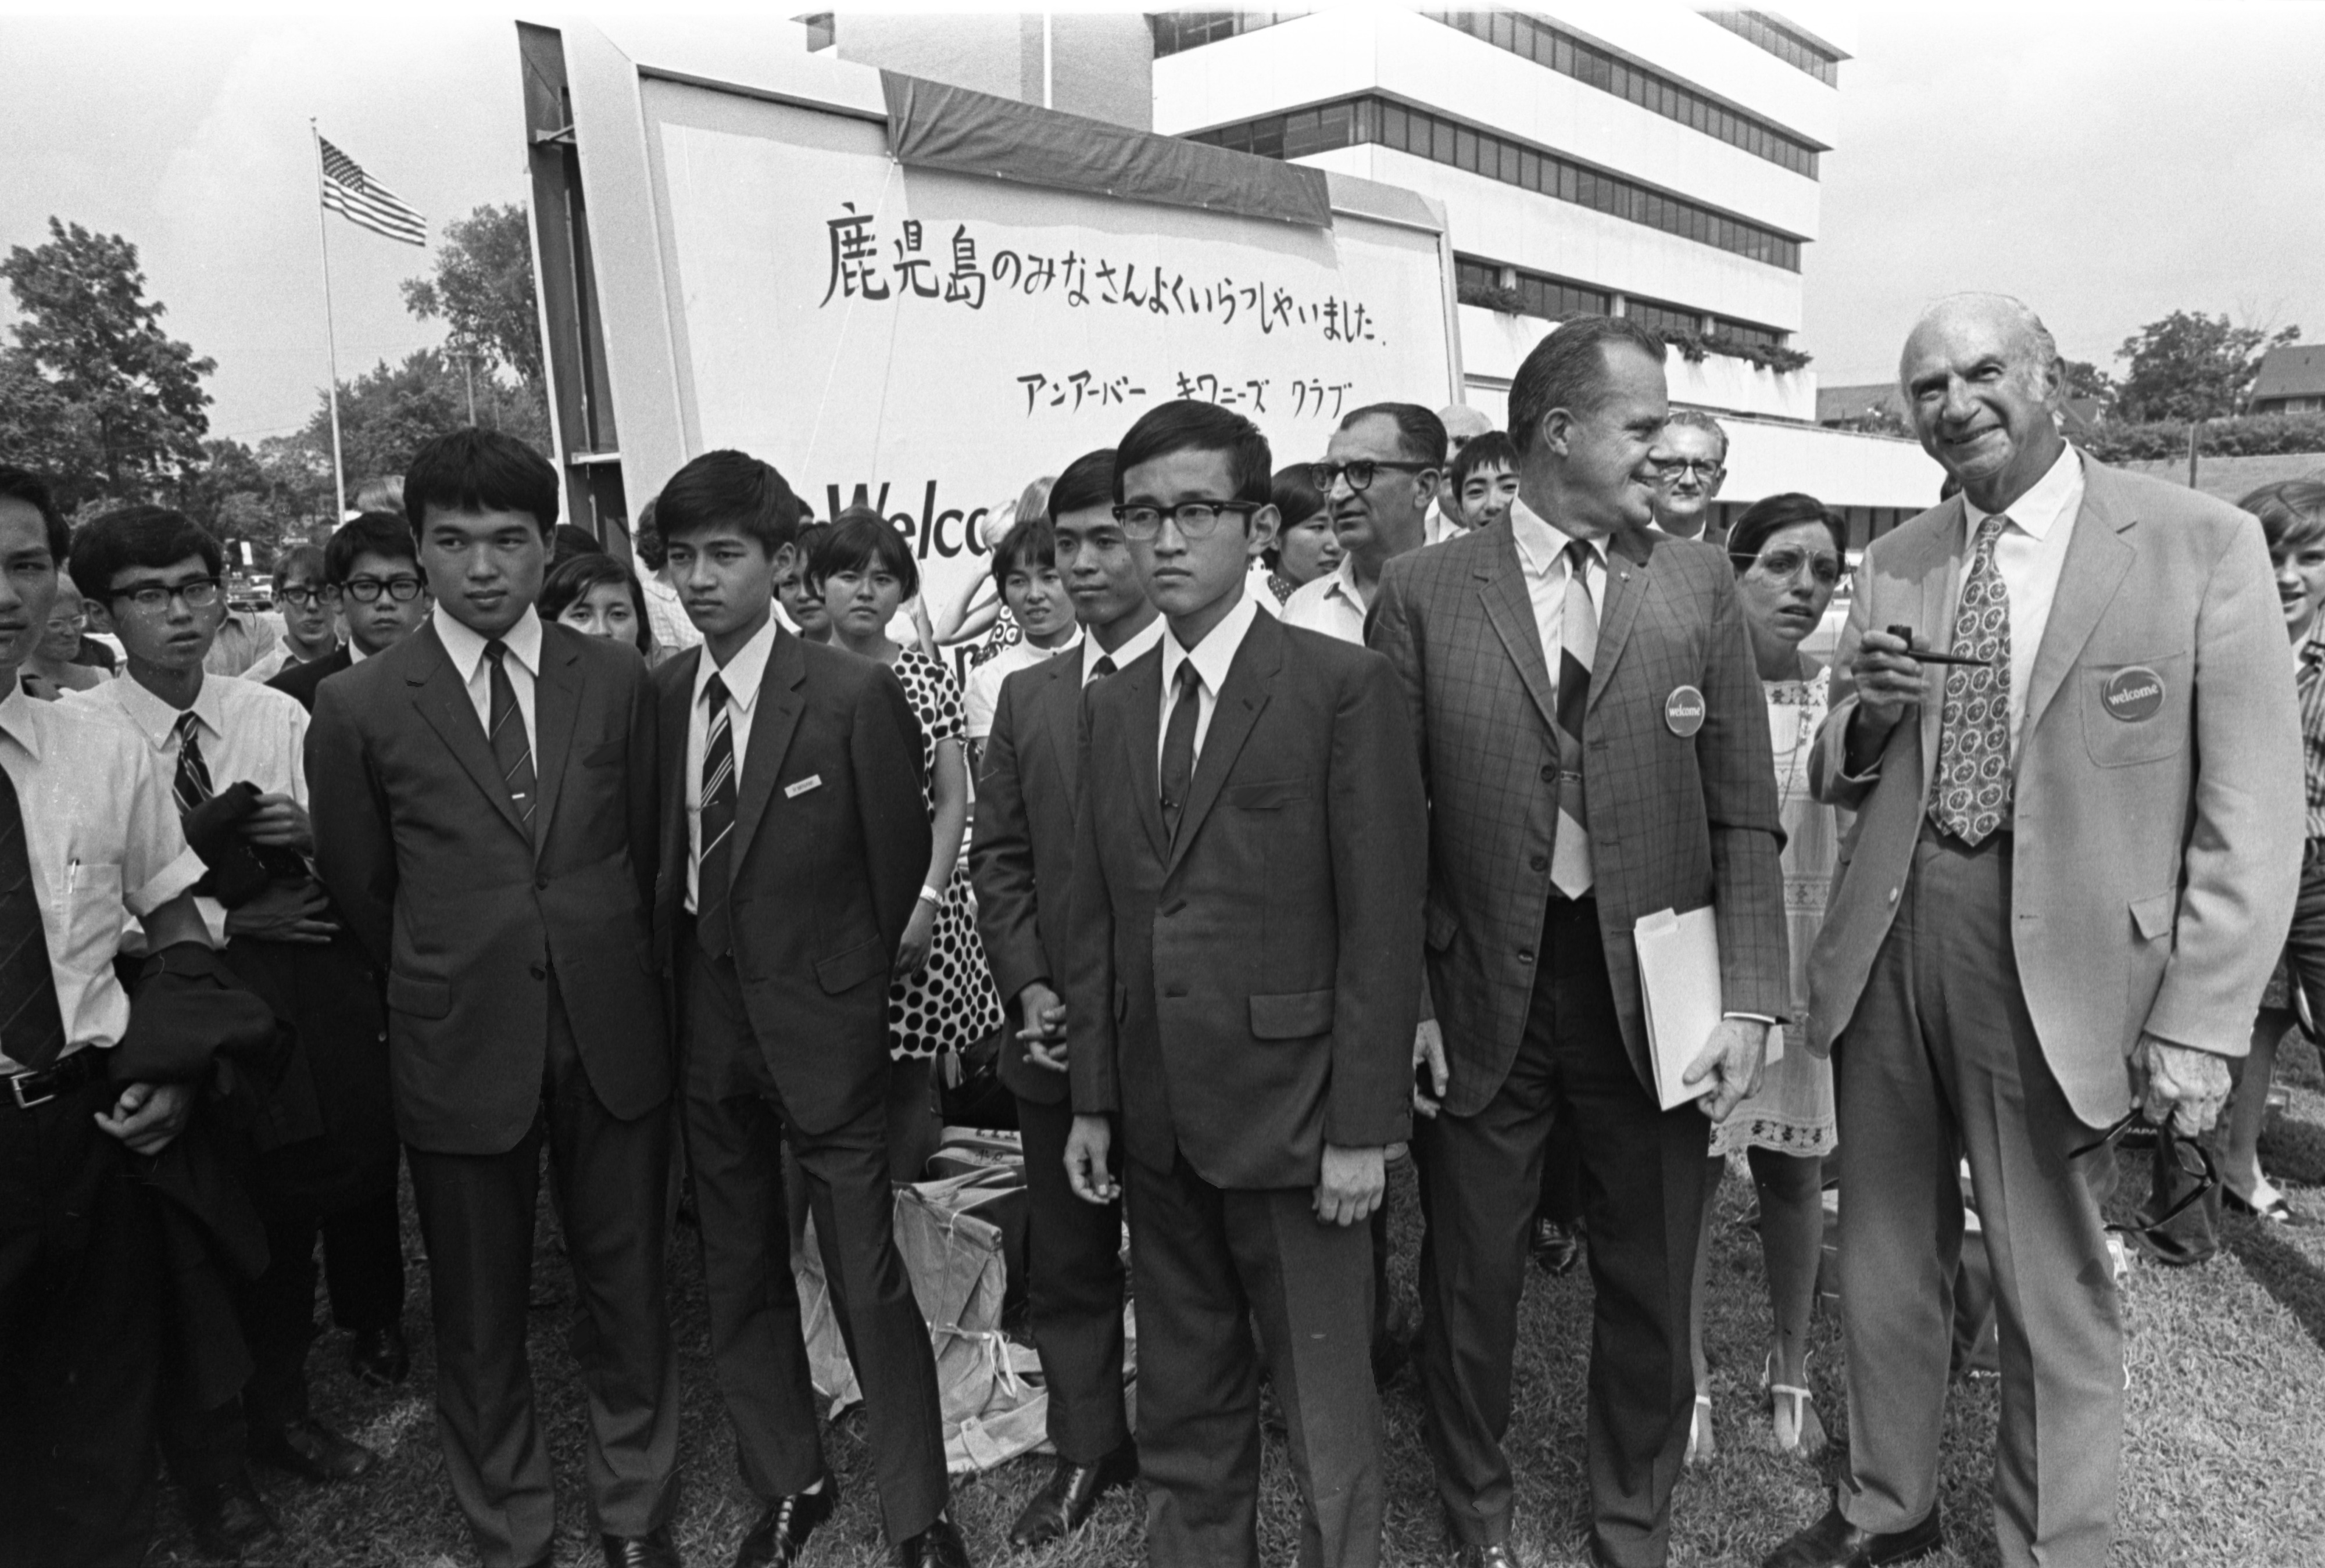 Visiting Japanese High School Students With Kiwanis Club Sponsors, August 1, 1970 image